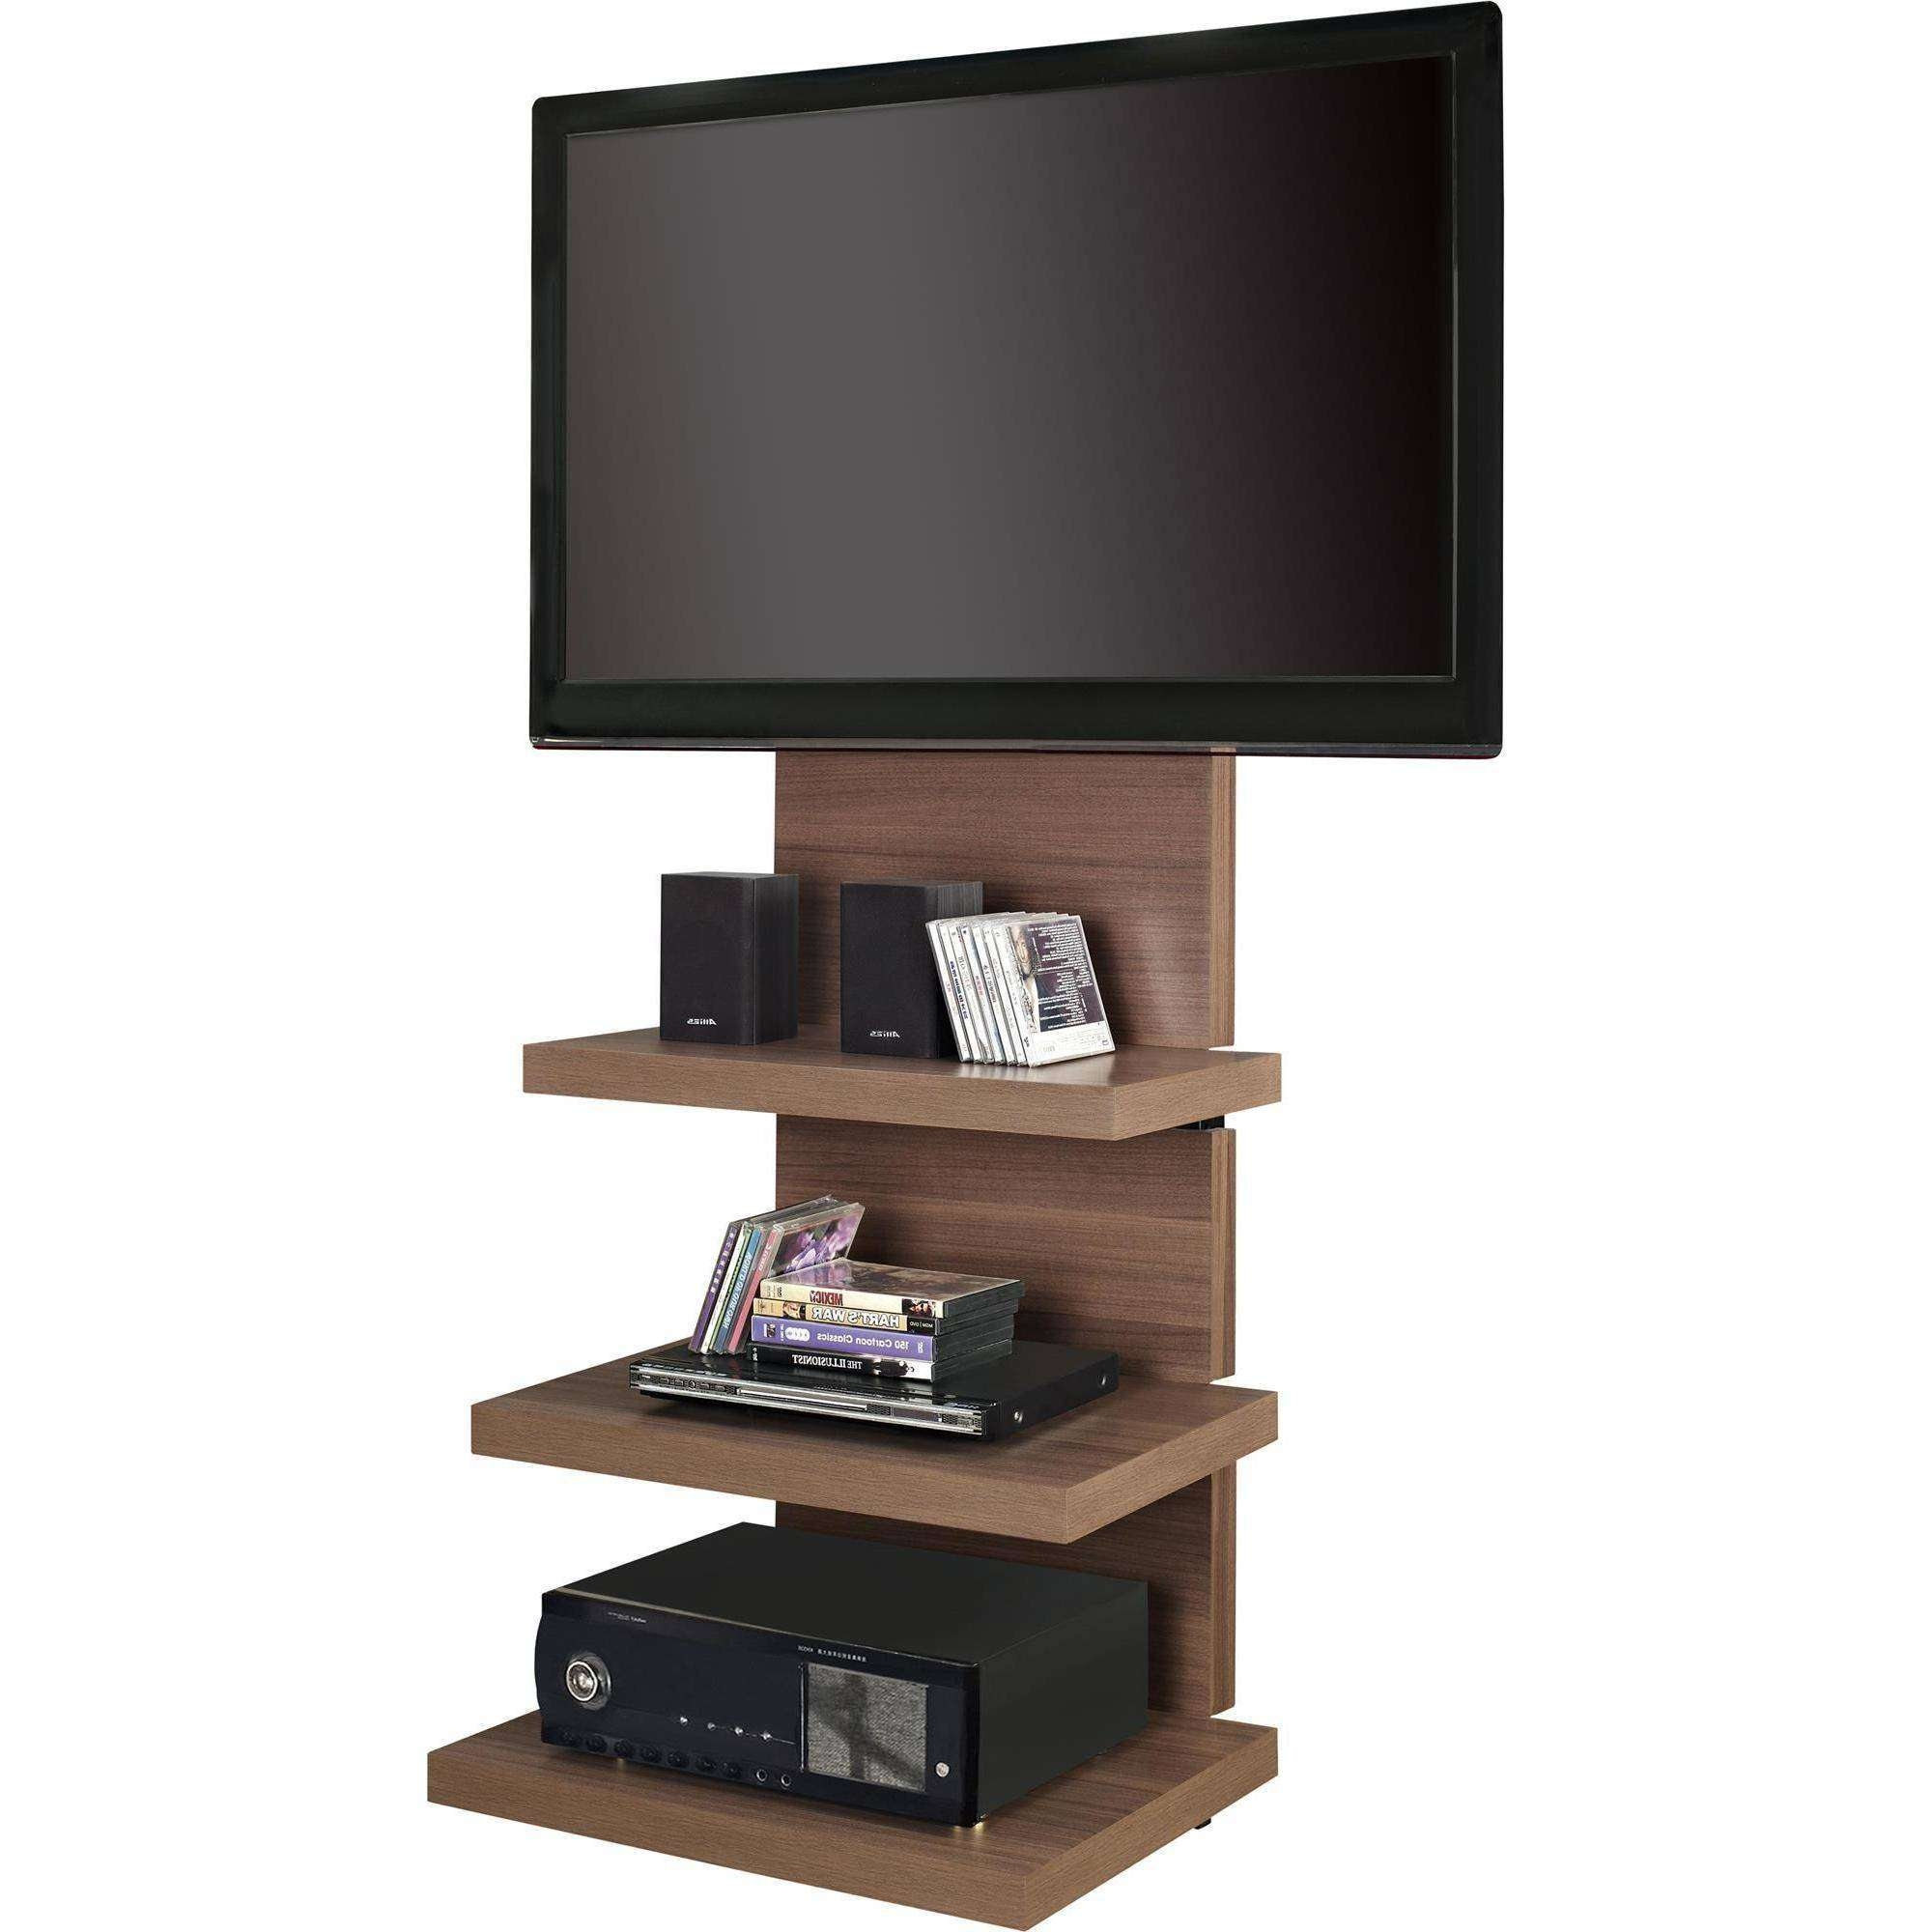 Ameriwood Home Elevation Altramount Tv Stand For Tvs Up To 60 With Regard To Modern Tv Stands With Mount (View 5 of 15)